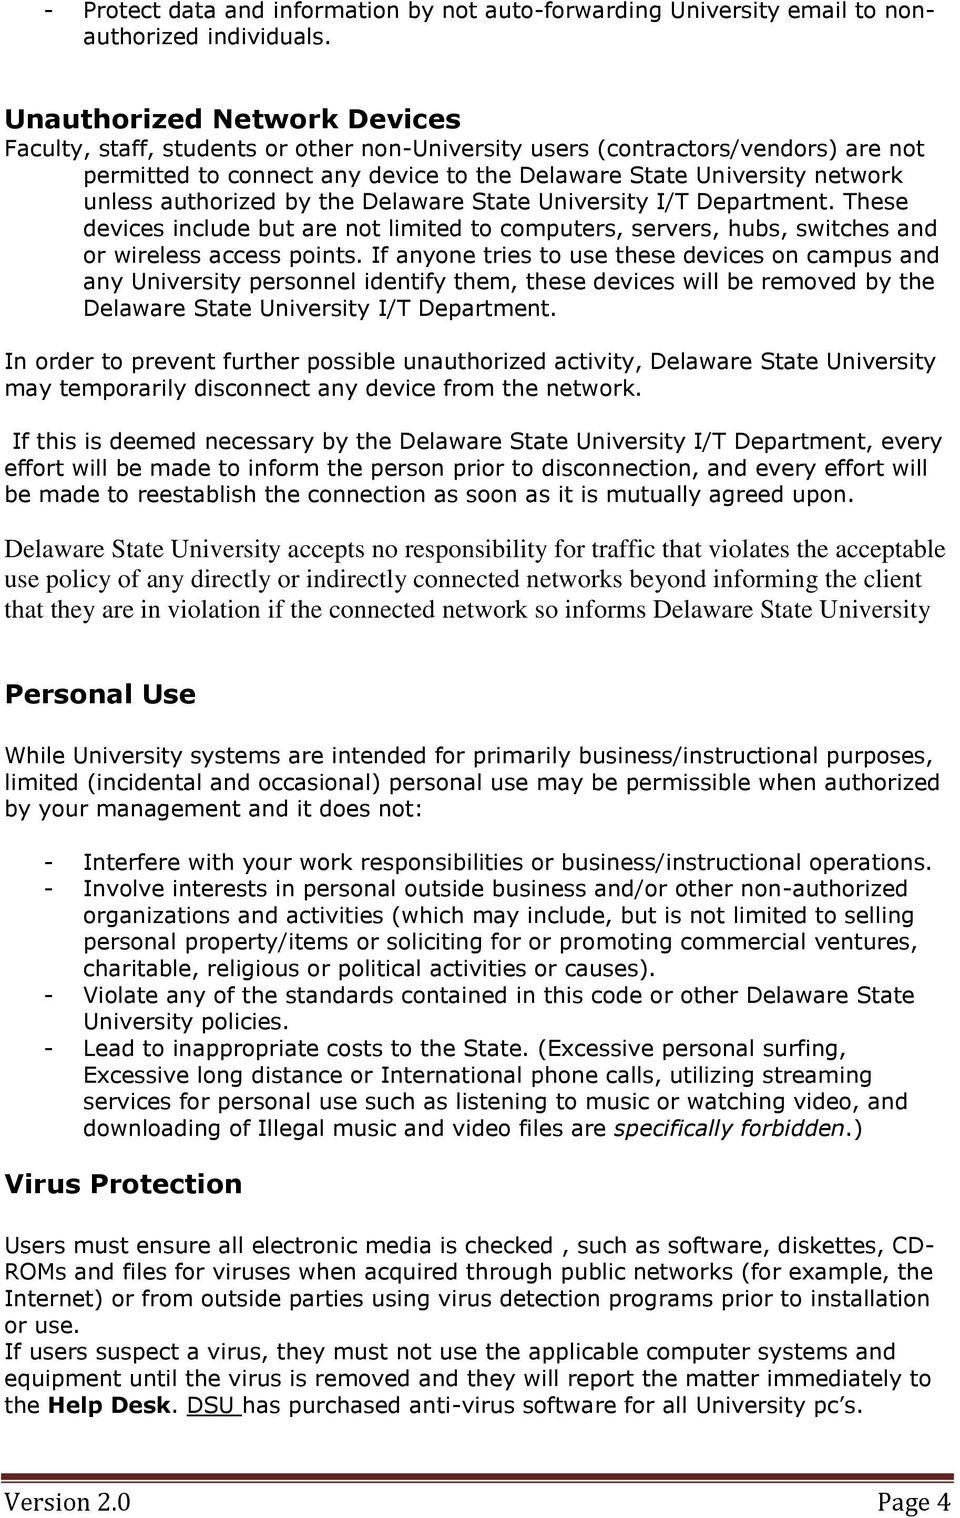 authorized by the Delaware State University I/T Department. These devices include but are not limited to computers, servers, hubs, switches and or wireless access points.